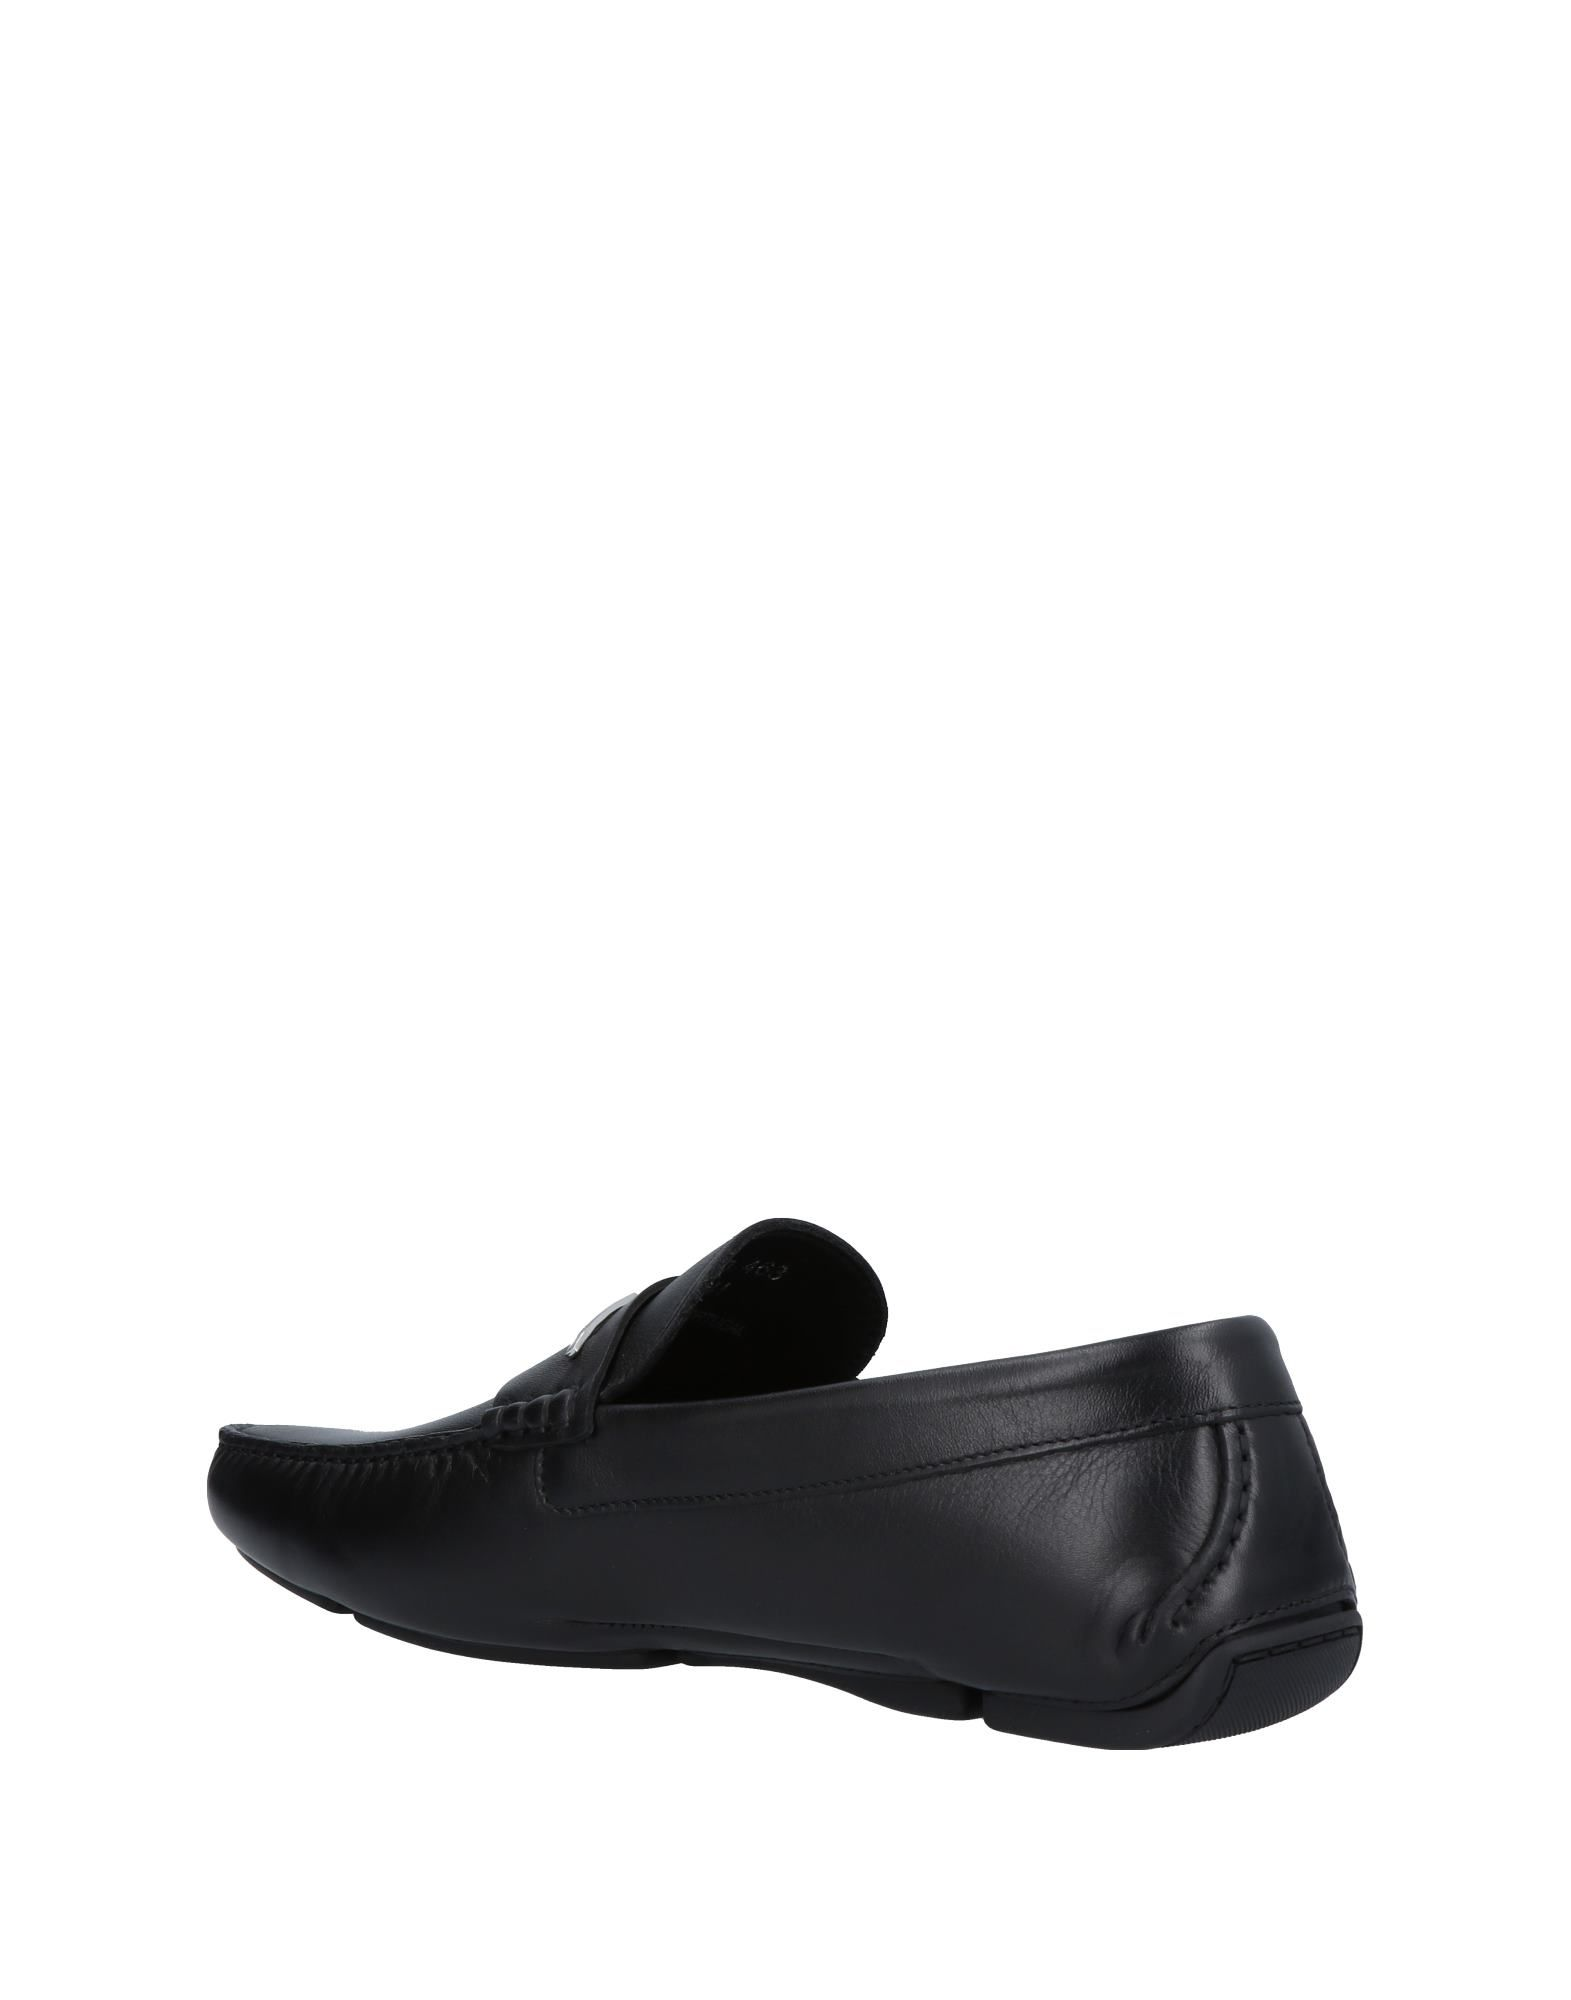 Versace Collection Loafers - Men Men Men Versace Collection Loafers online on  Canada - 11162023KR 5353c2